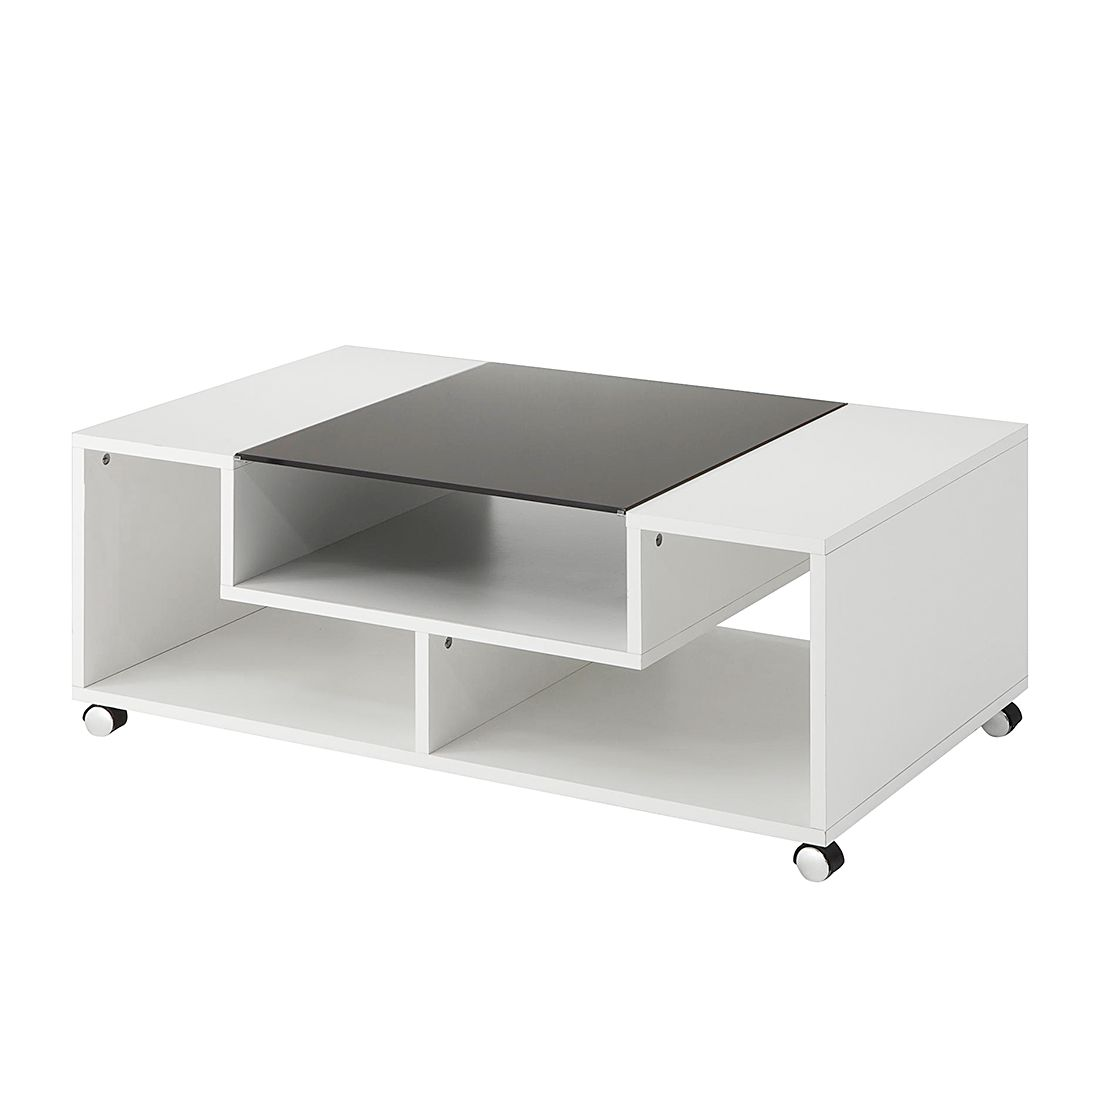 Table basse Franky - Blanc / Noir, mooved